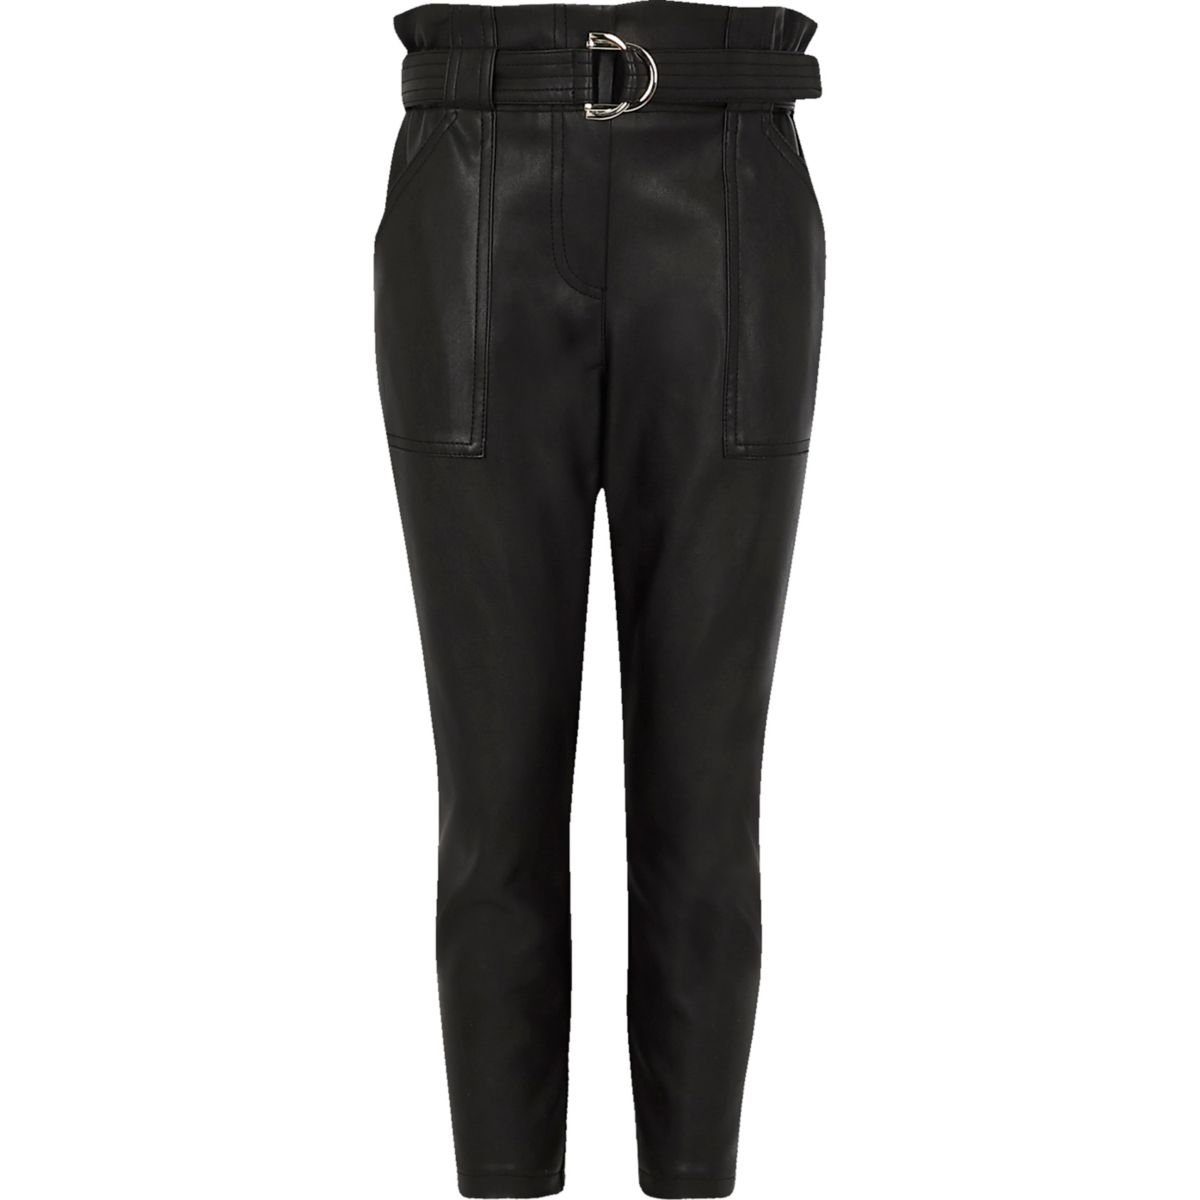 Girls black faux leather belted pants